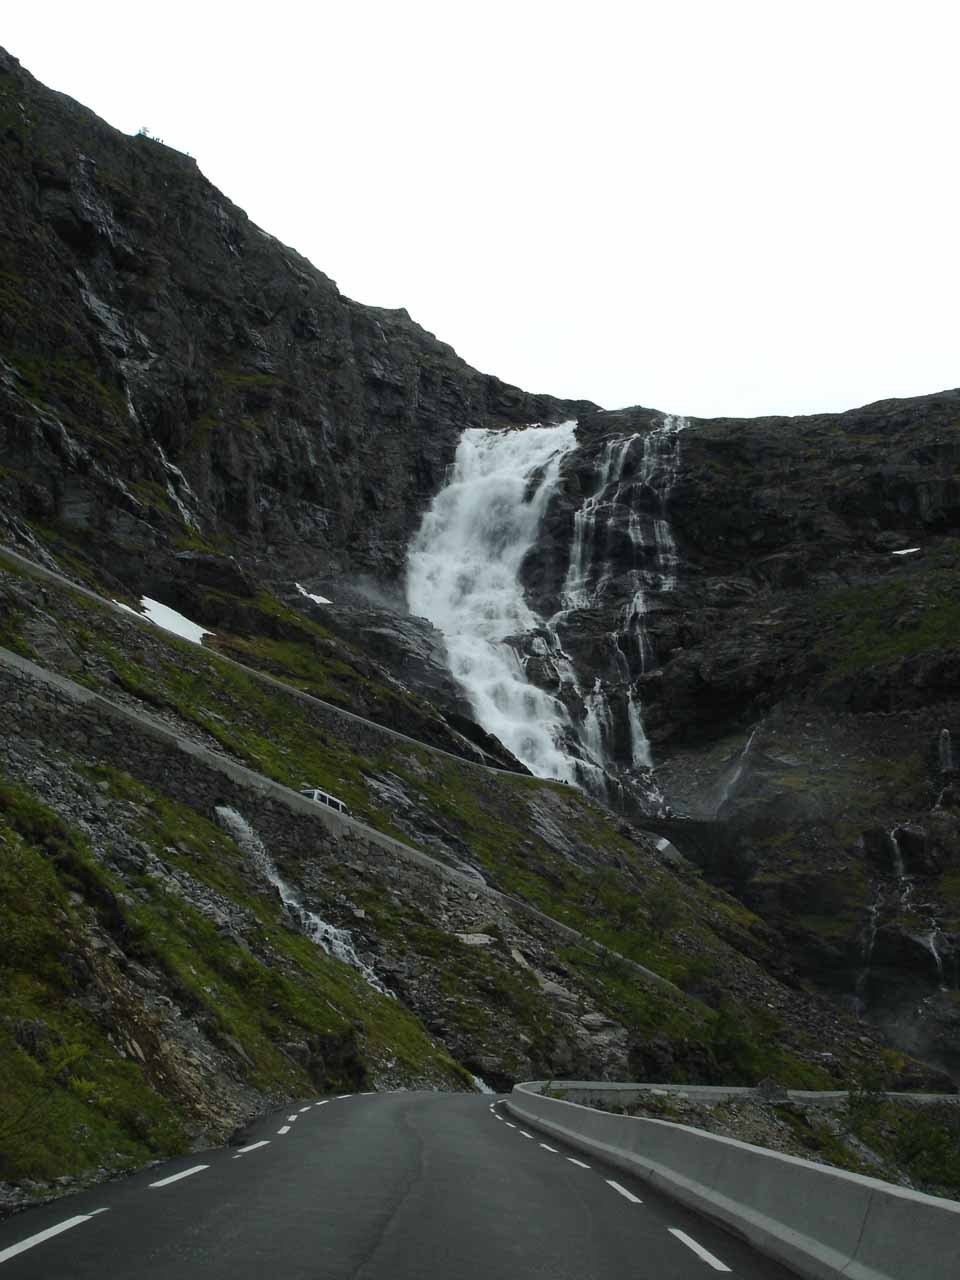 On Trollstigen with Stigfossen and more steep switchbacks further ahead